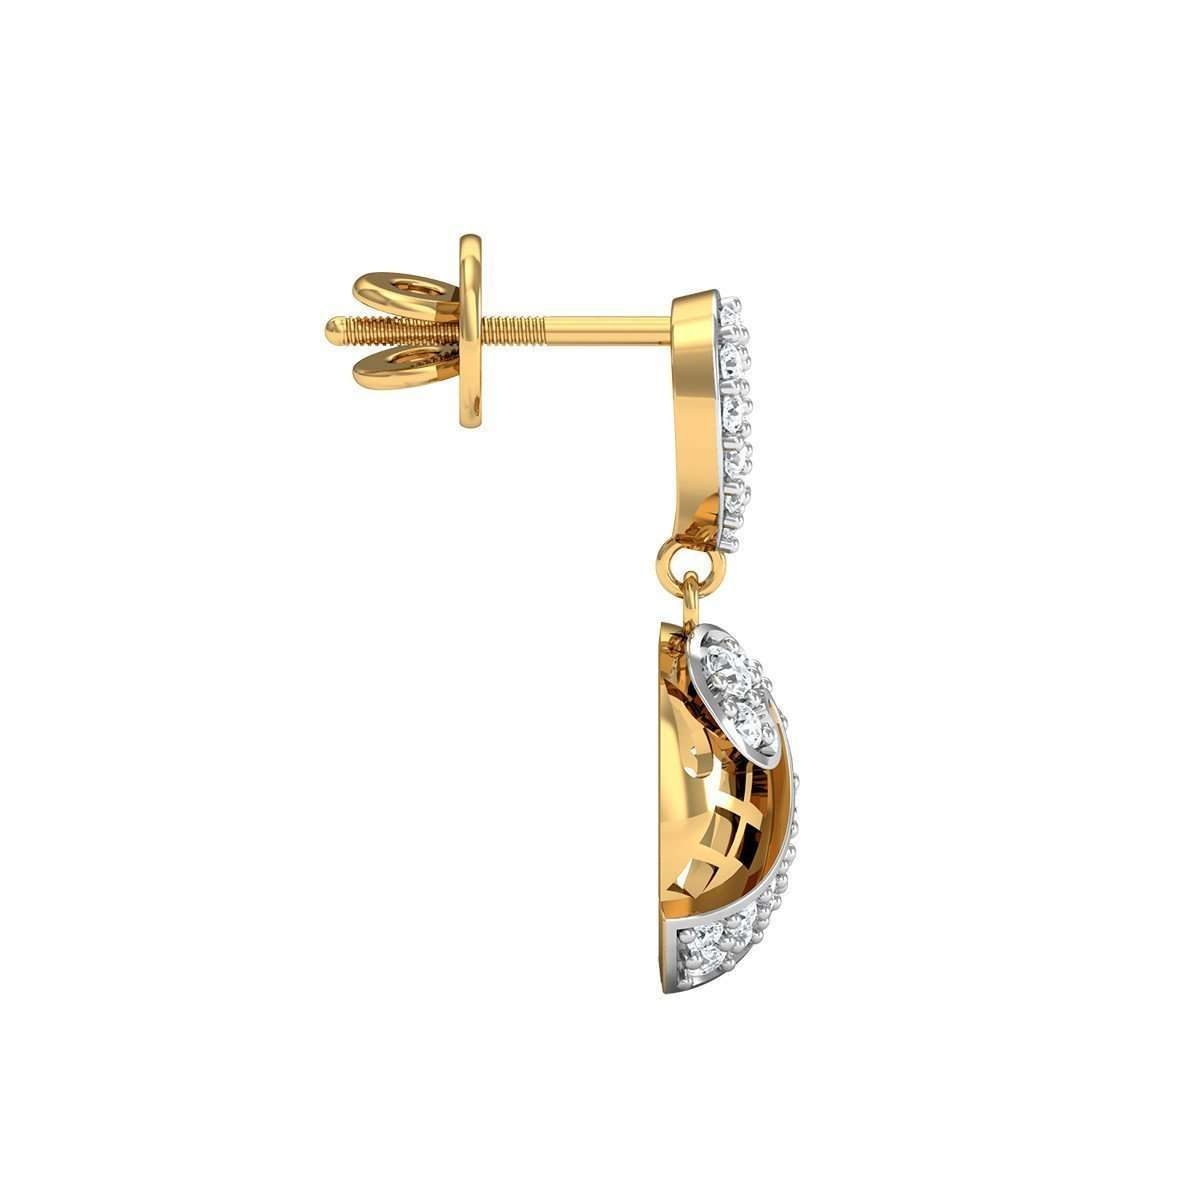 52 Premium Round Cut Diamonds and 18kt Yellow Gold Pave Earrings-Diamoire Jewels-JewelStreet EU